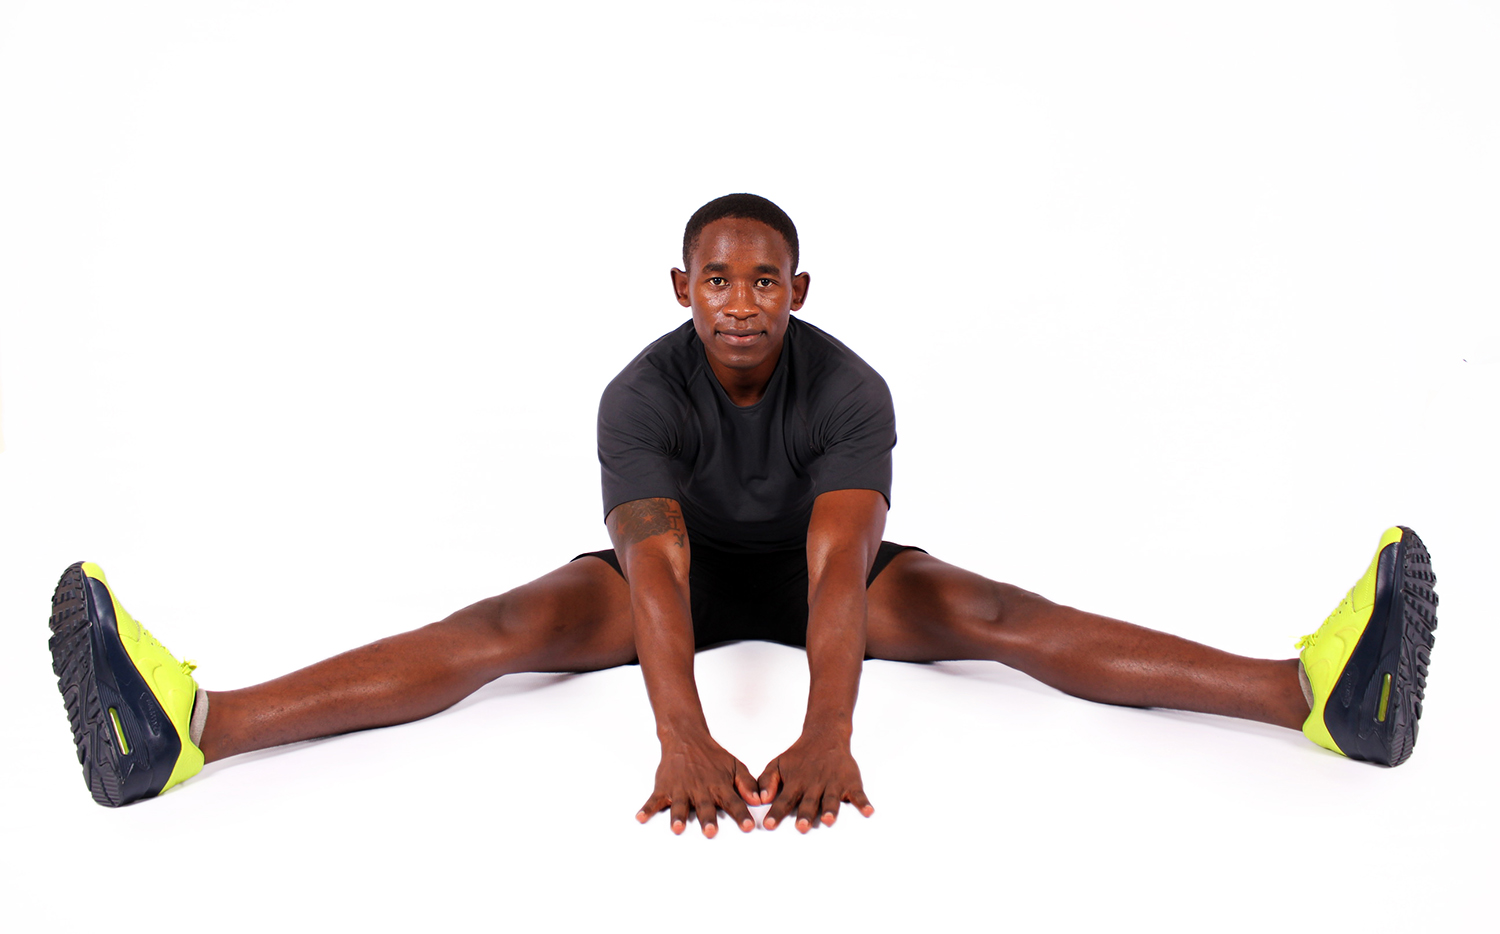 Muscular man stretching legs on white background